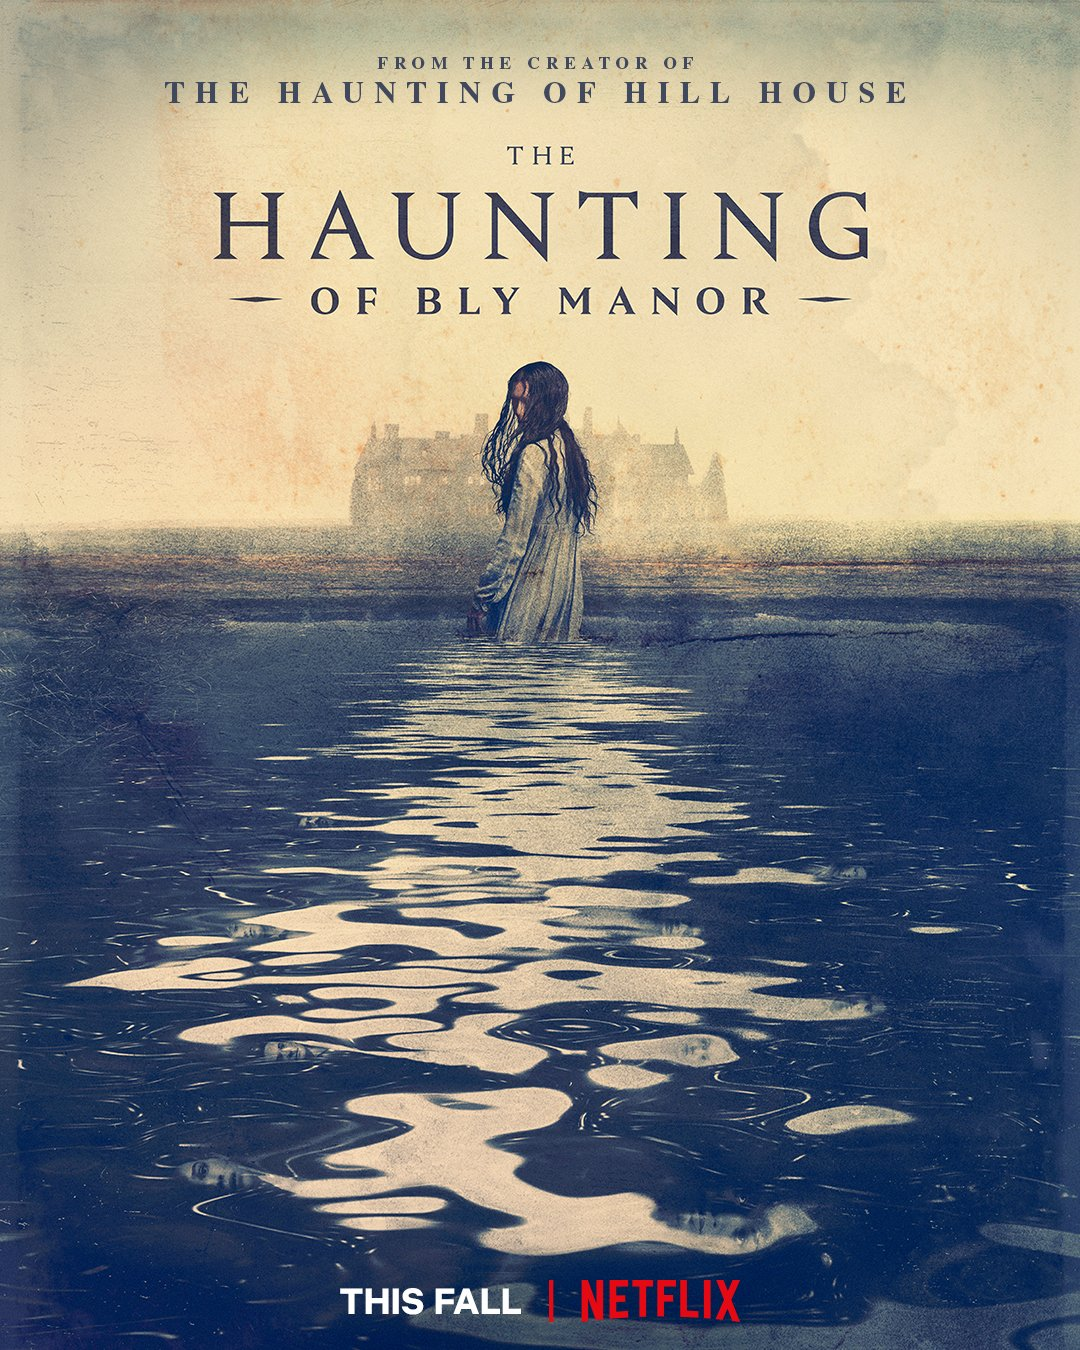 The Haunting Of Bly Manor Set For Fall Premiere On Netflix Tvline